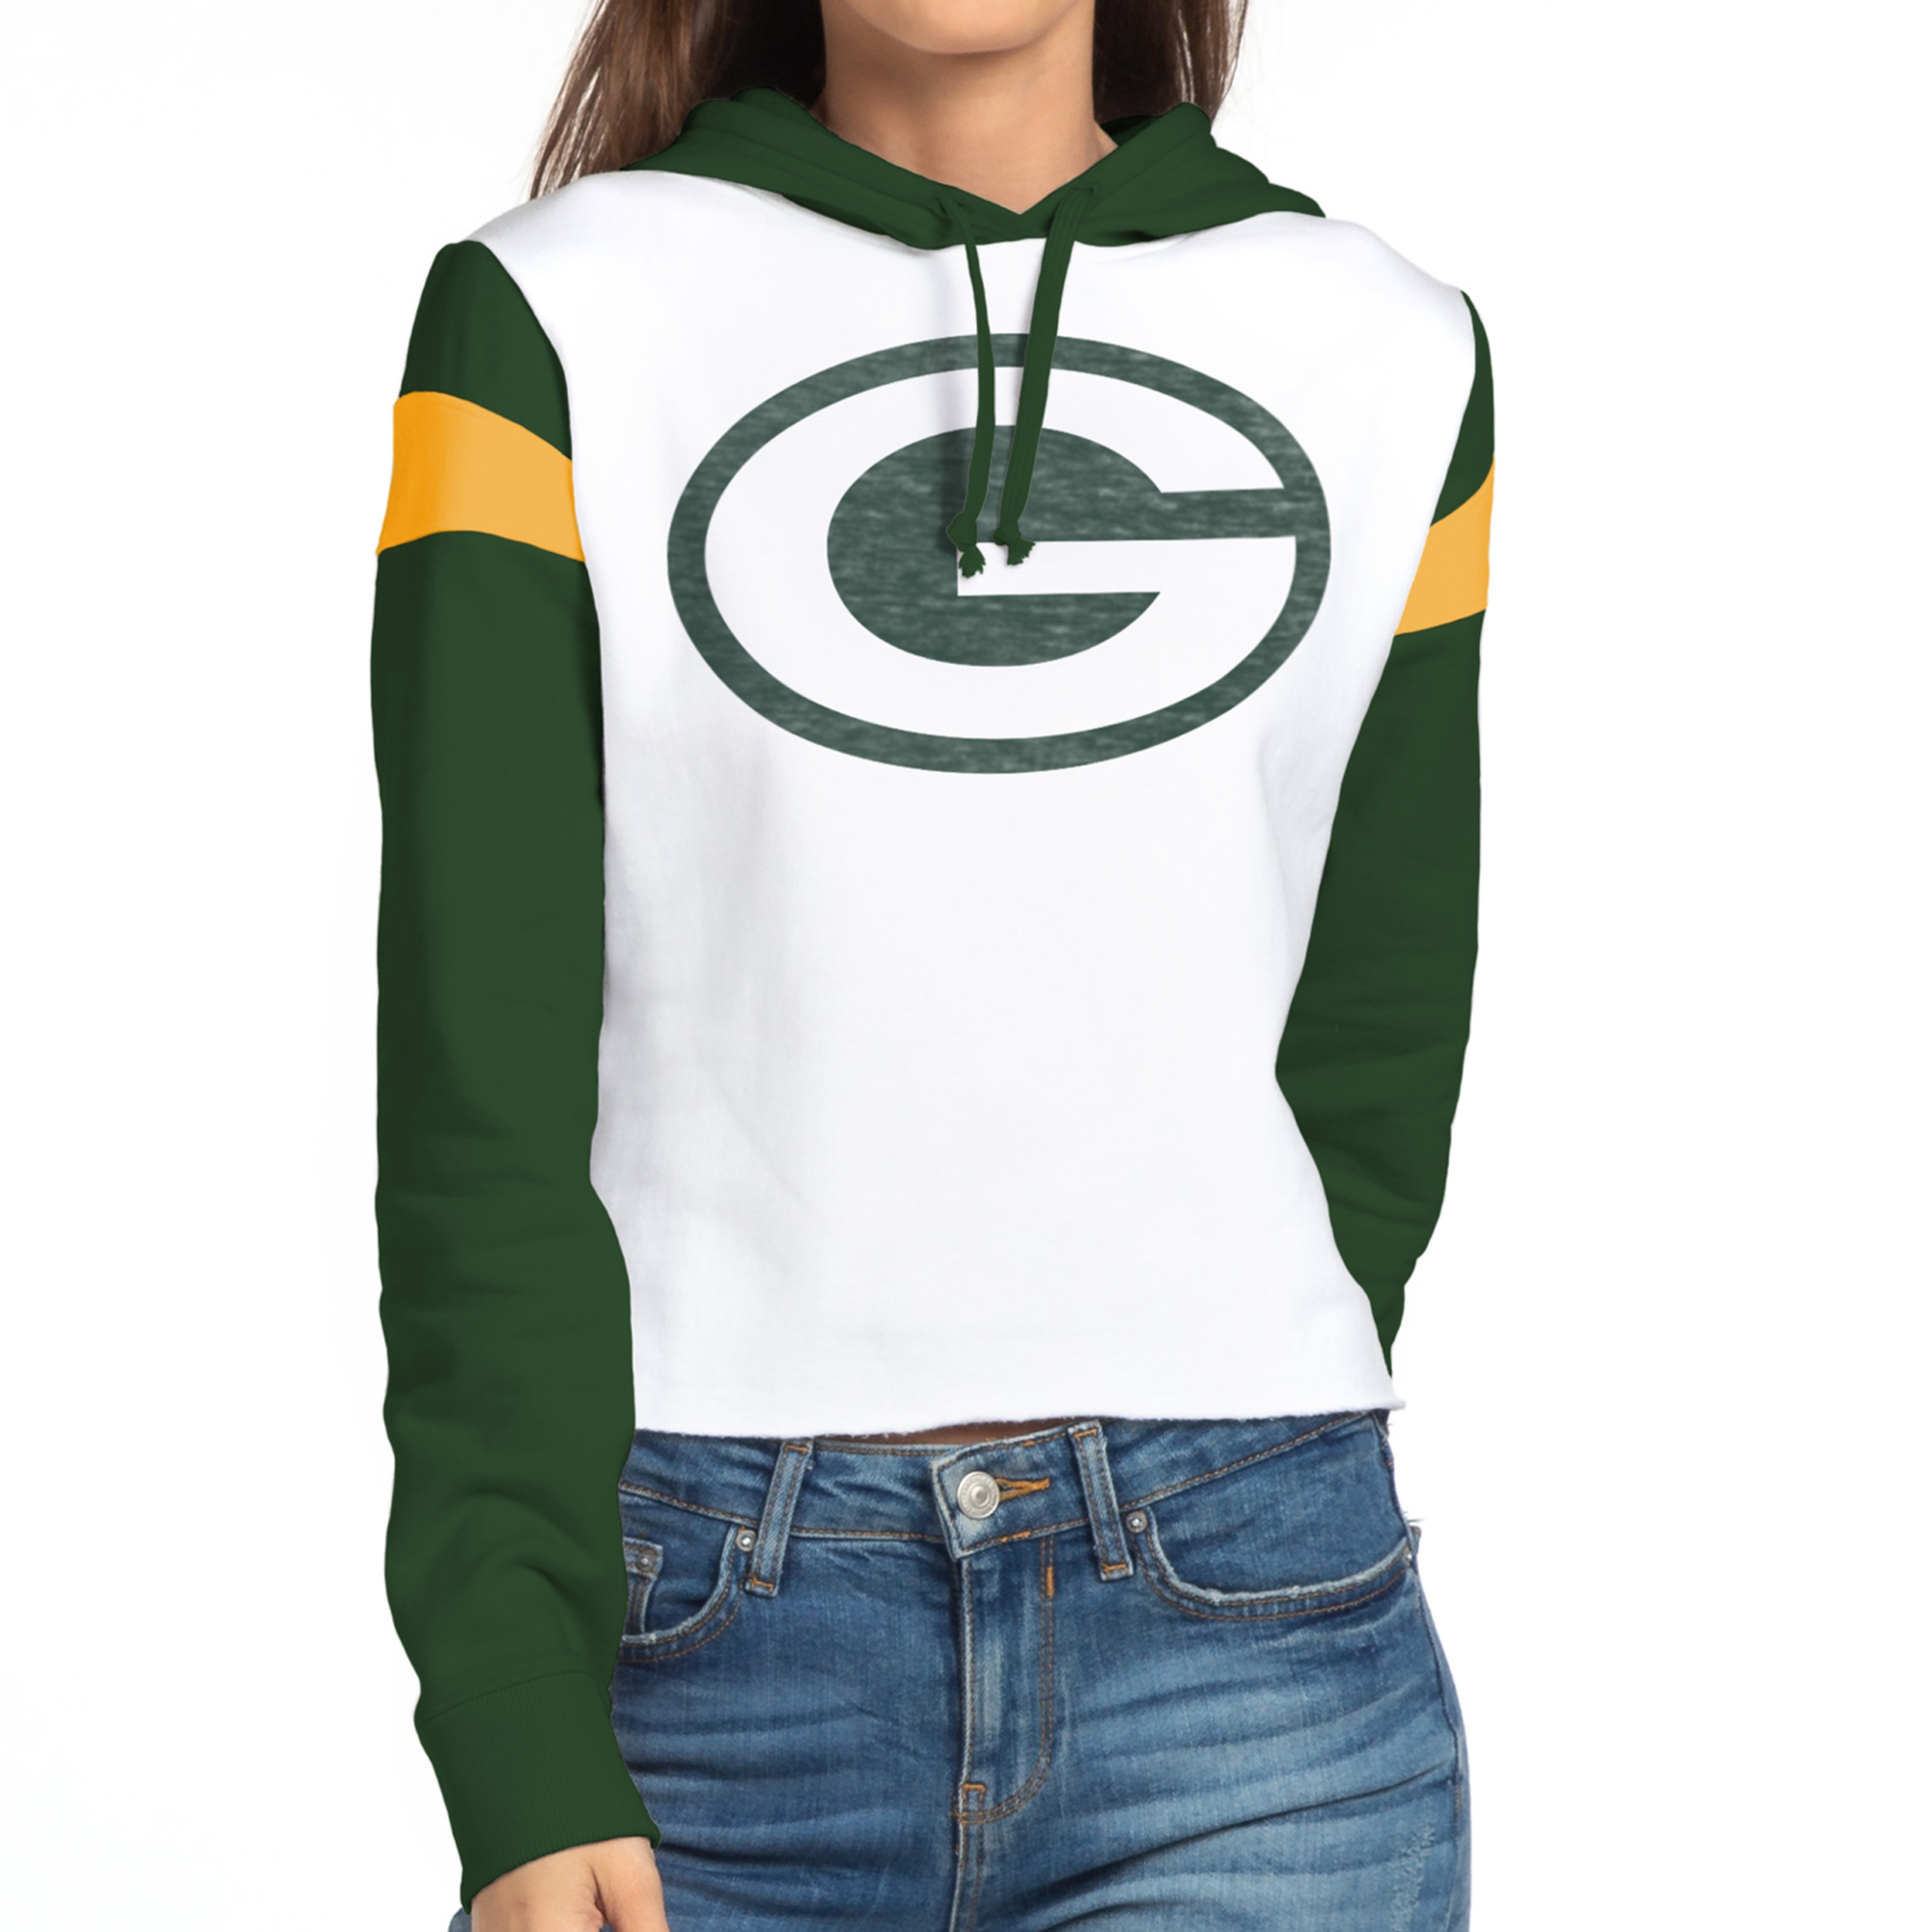 Green Bay Packers Women's Cropped